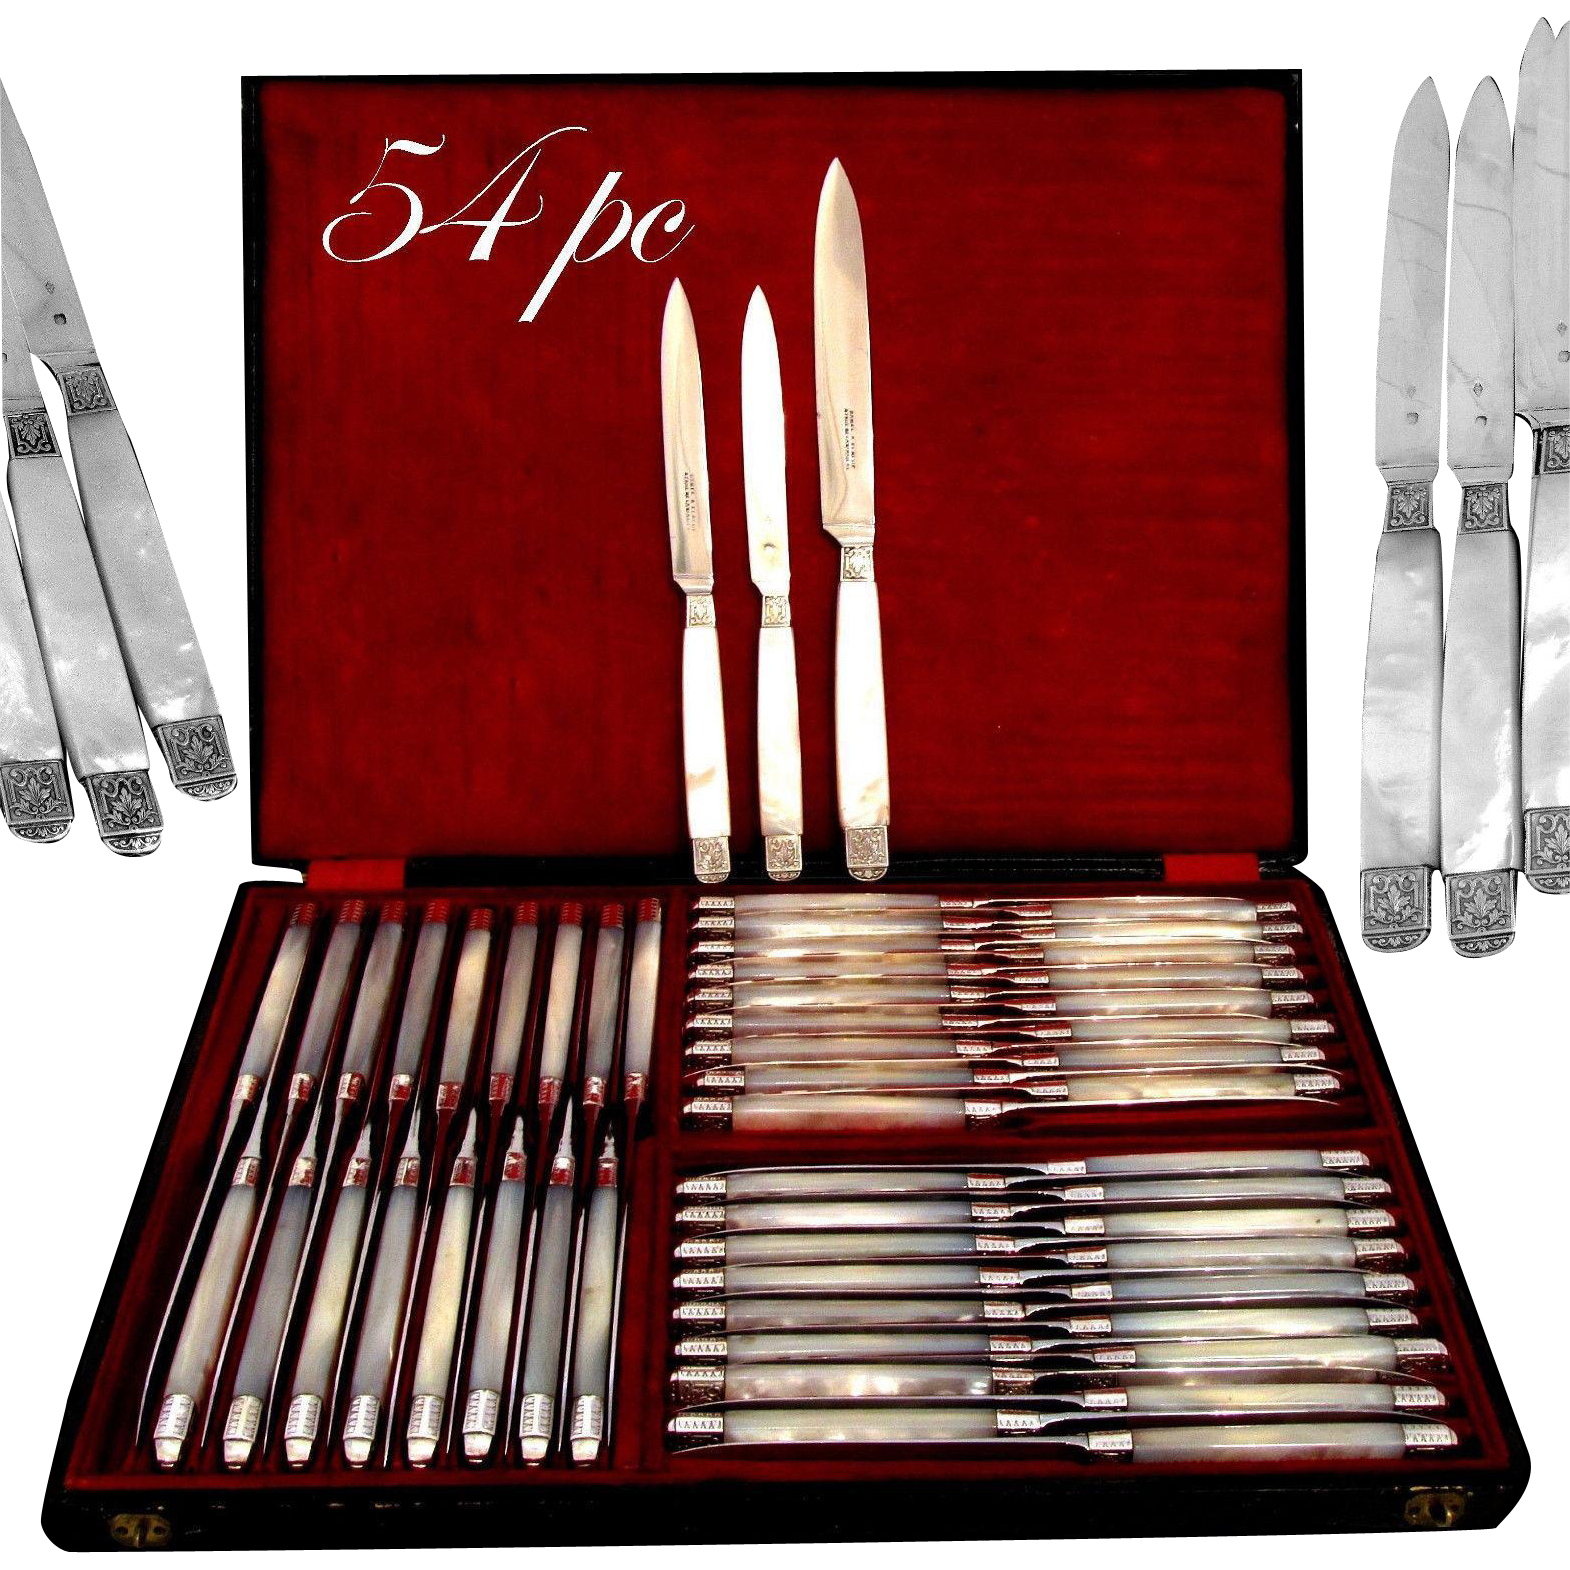 Piault Rare French Mother of Pearl Sterling Silver Table Knife Set 54 pc w/Box